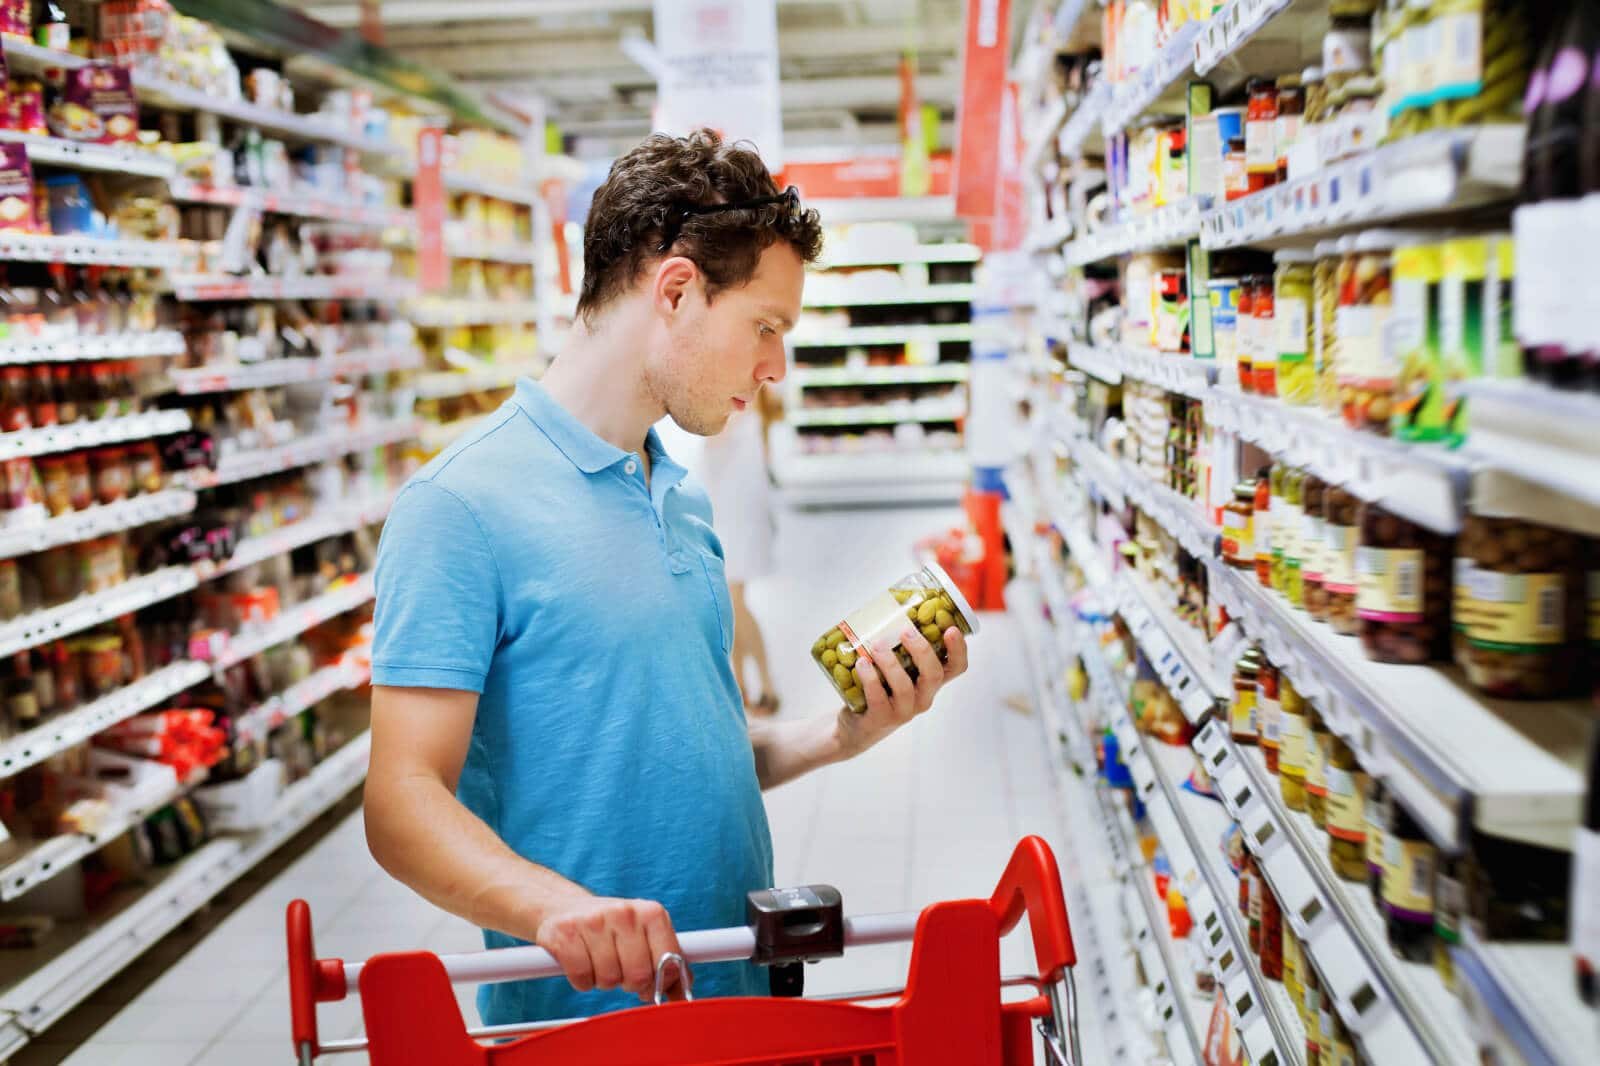 Supermarket, man with olives and trolley